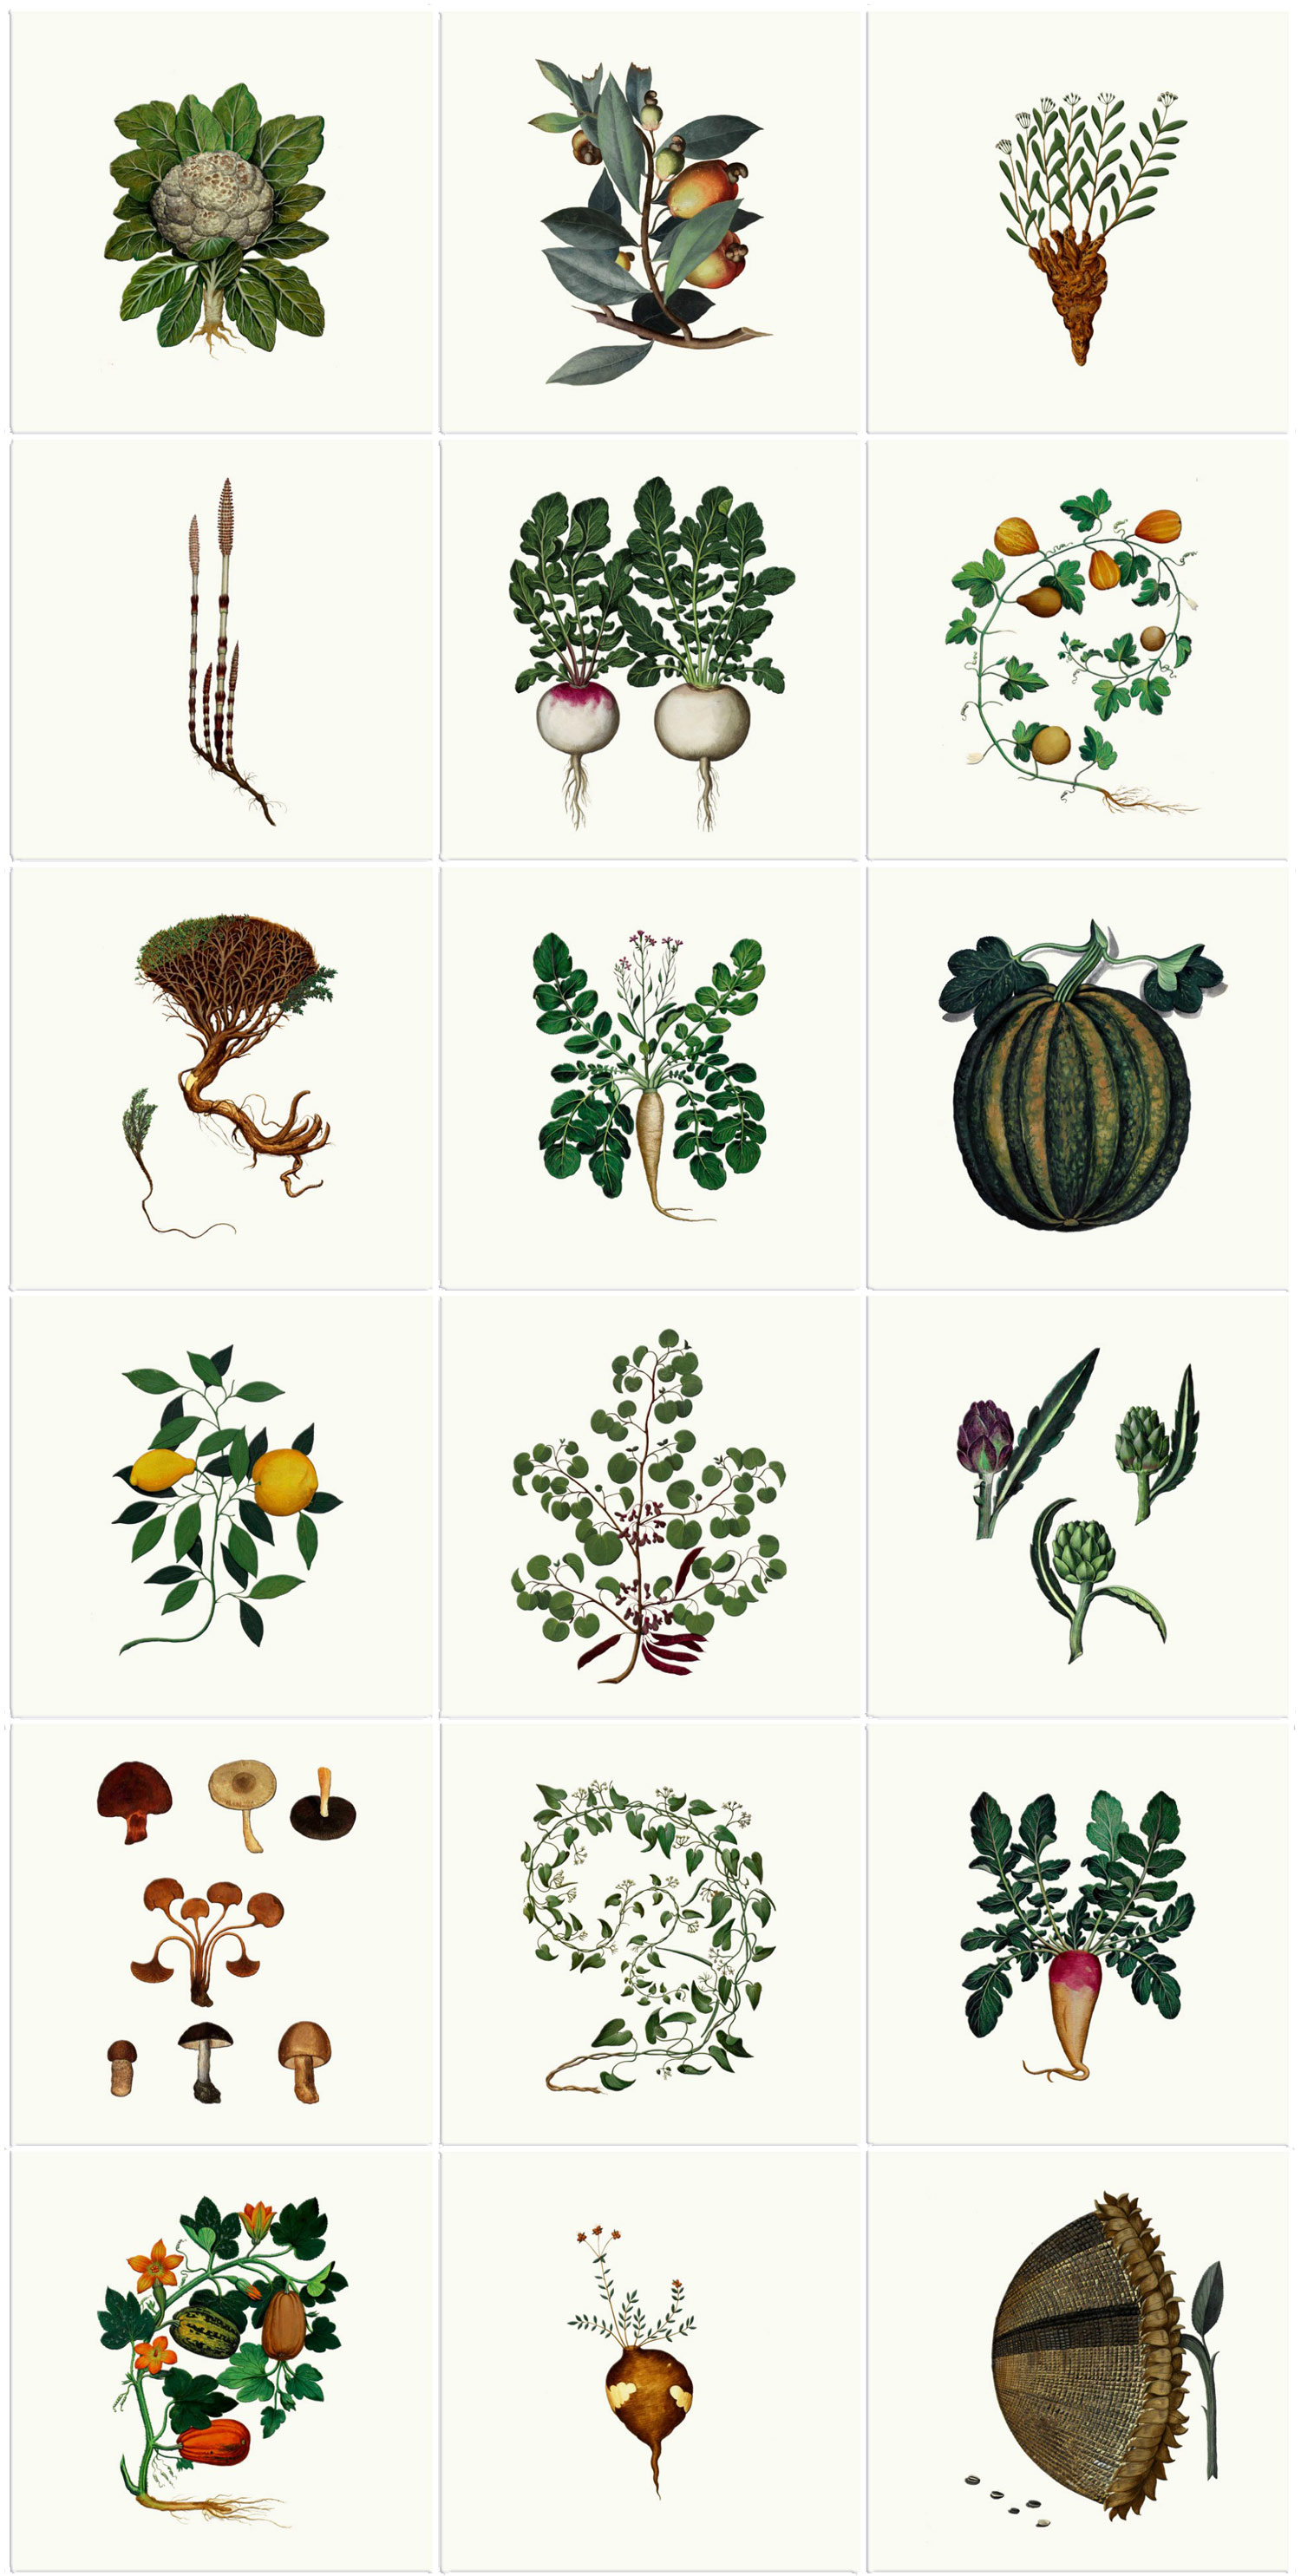 Medieval Italian Kitchen Herbs And Vegetables Tiles